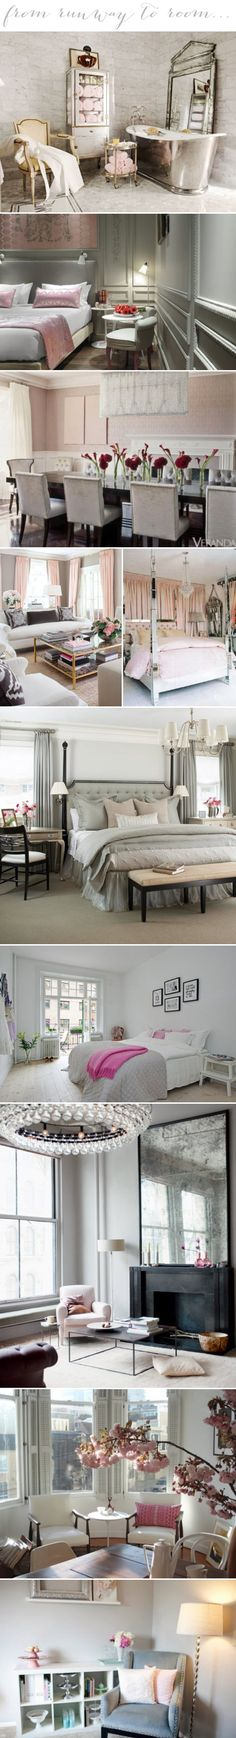 {home decor} | {what you fancy}